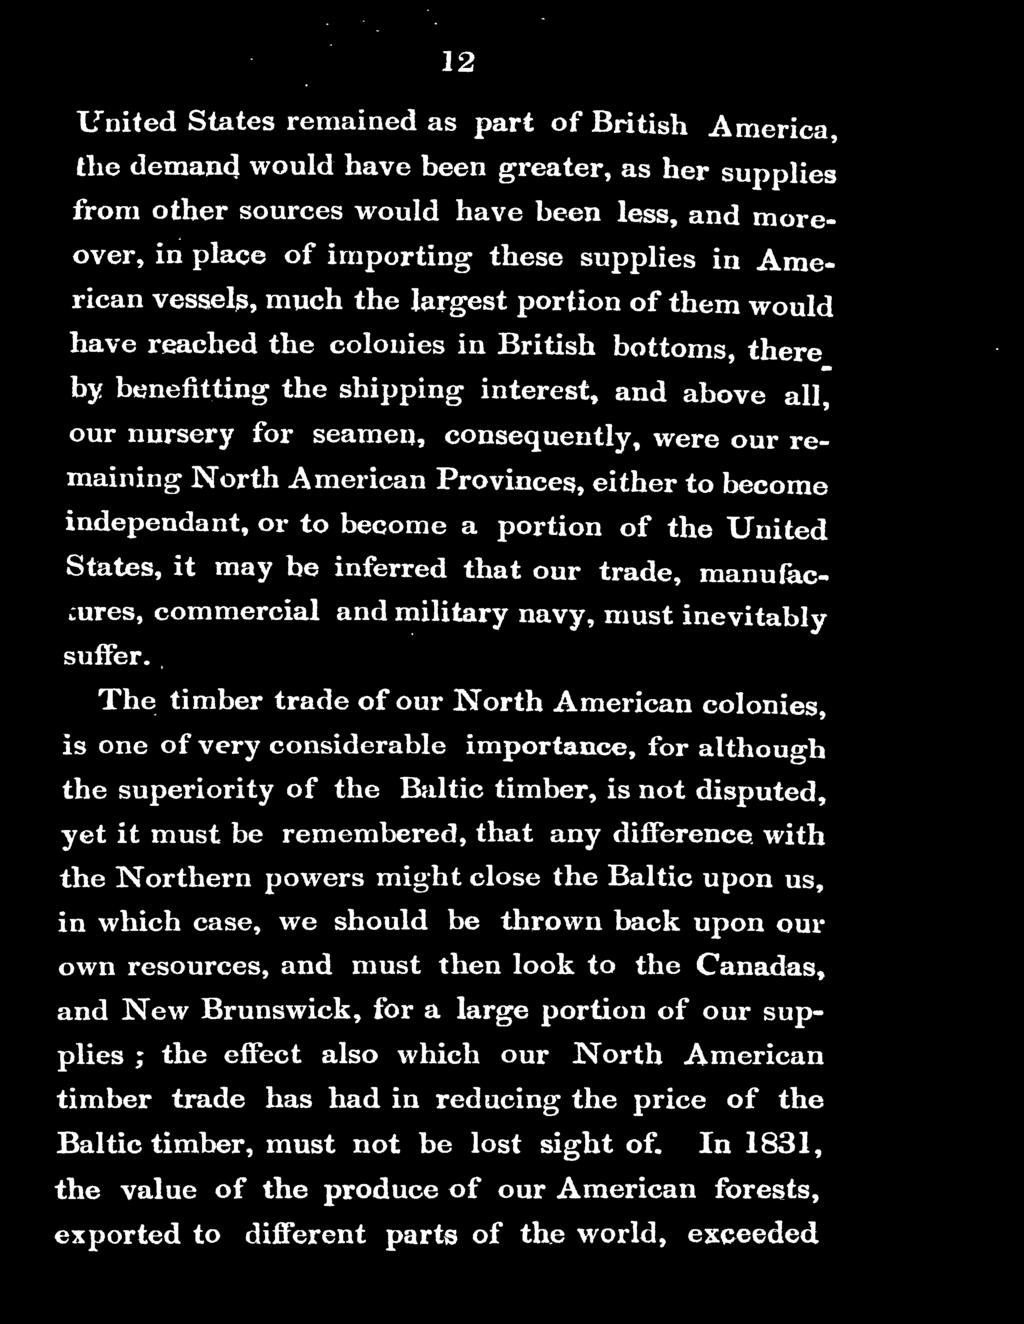 The timber trade of our North American colonies, is one of very considerable importance, for although the superiority of tl1e Baltic timber, is not disputed, yet it must be remembered, that any